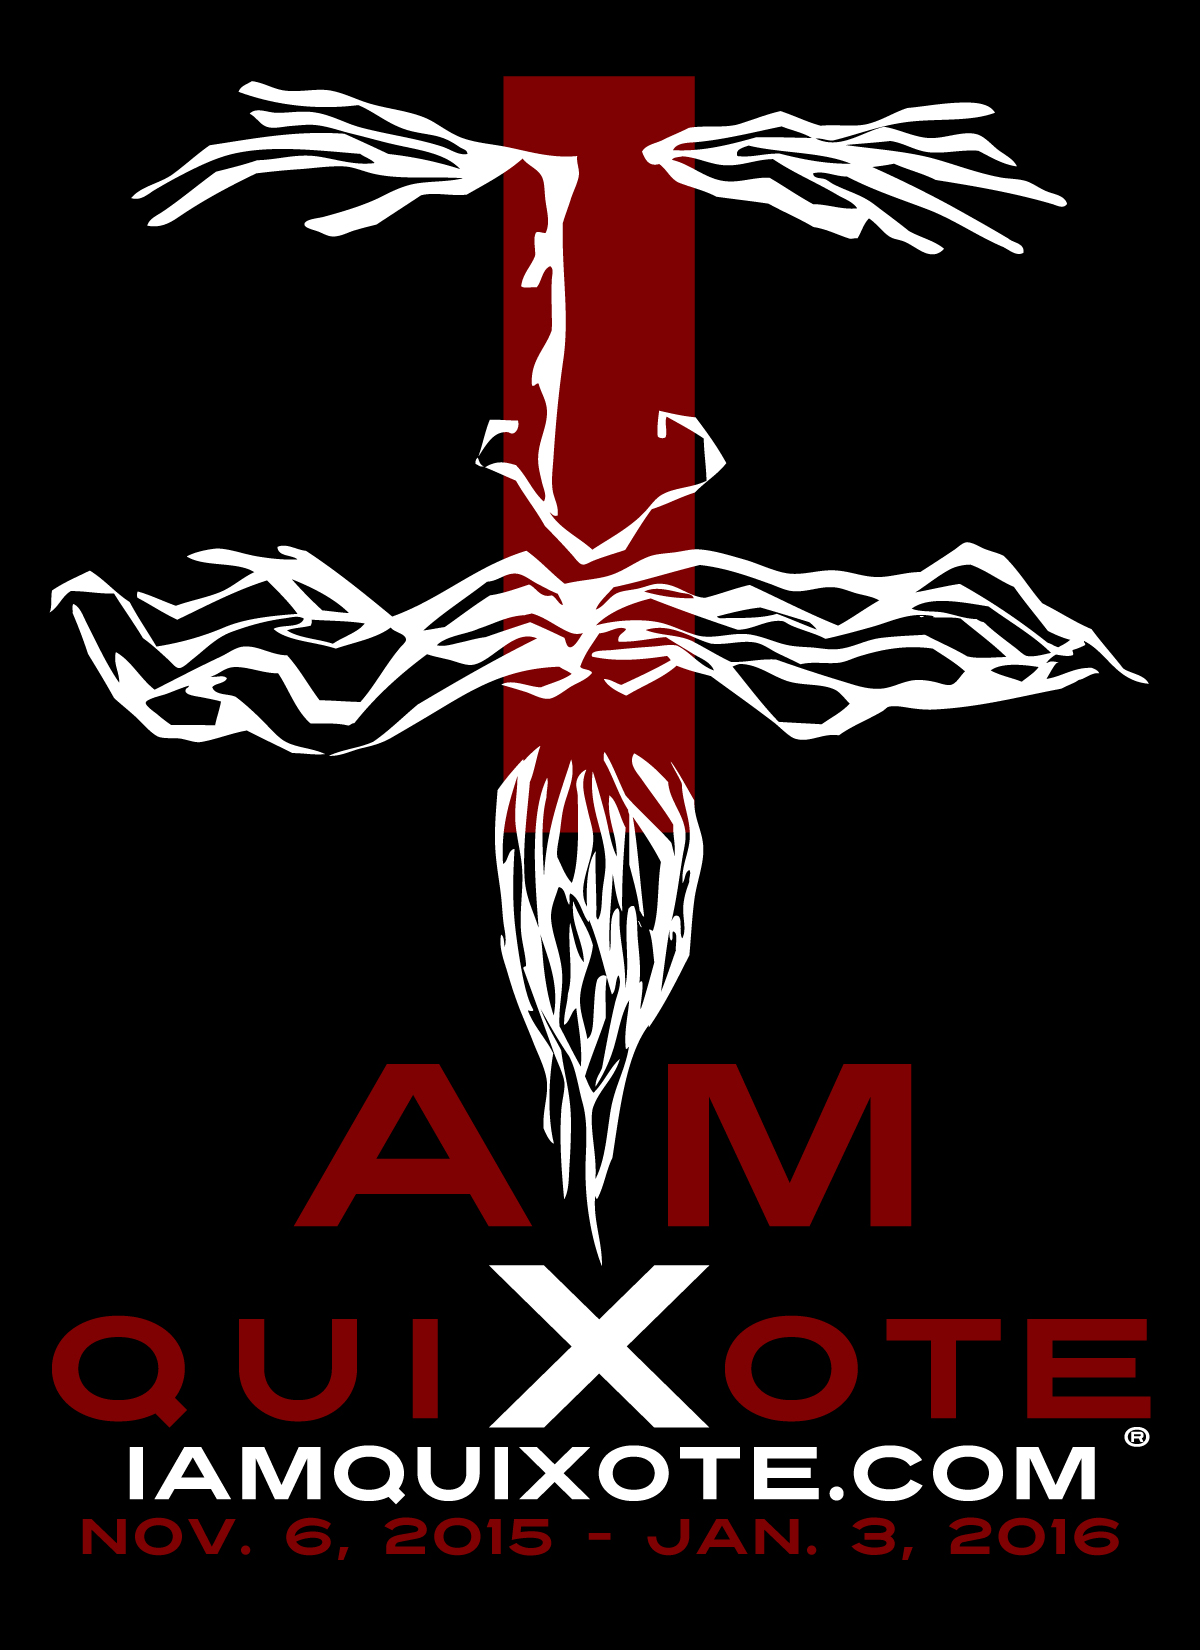 Artist Studio Project in Collaboration with Durham Arts Council Presents: I AM QUIXOTE - YOU SOY QUIJOTE ART EXHIBIT COMING NOV 6TH 2015 - JAN 3, 2016